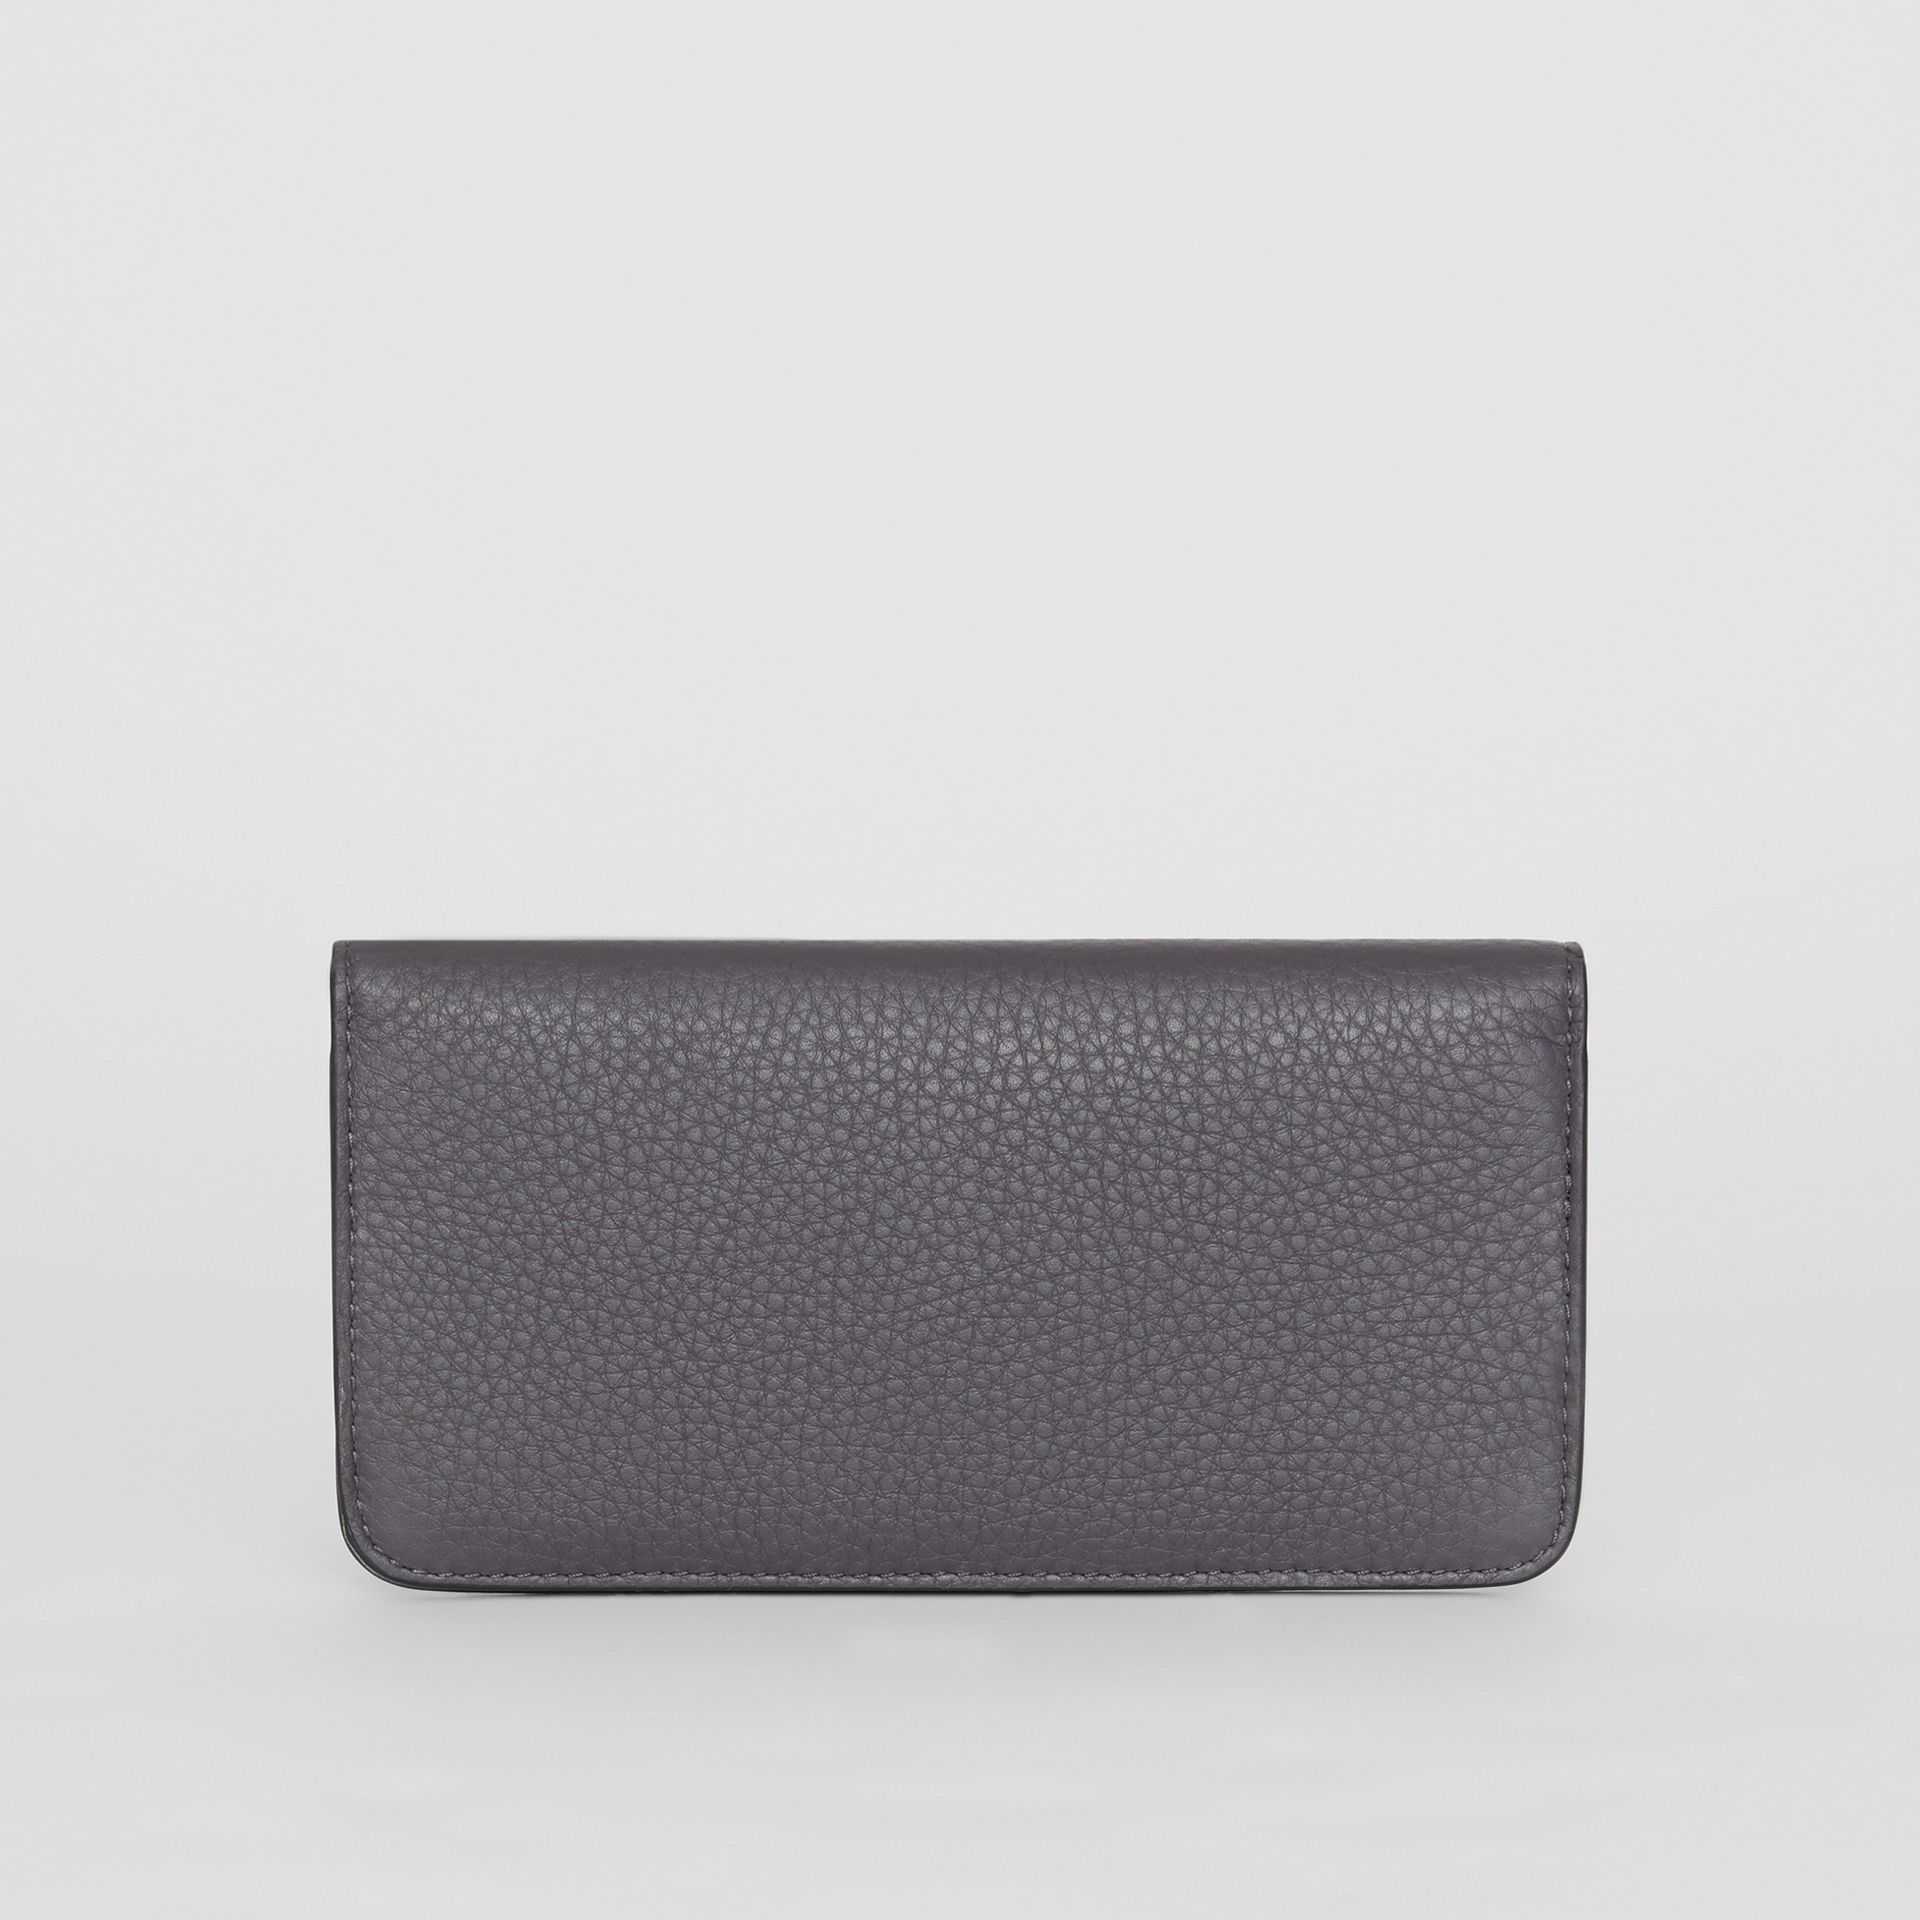 Leather Phone Wallet in Charcoal Grey - Women | Burberry - gallery image 5